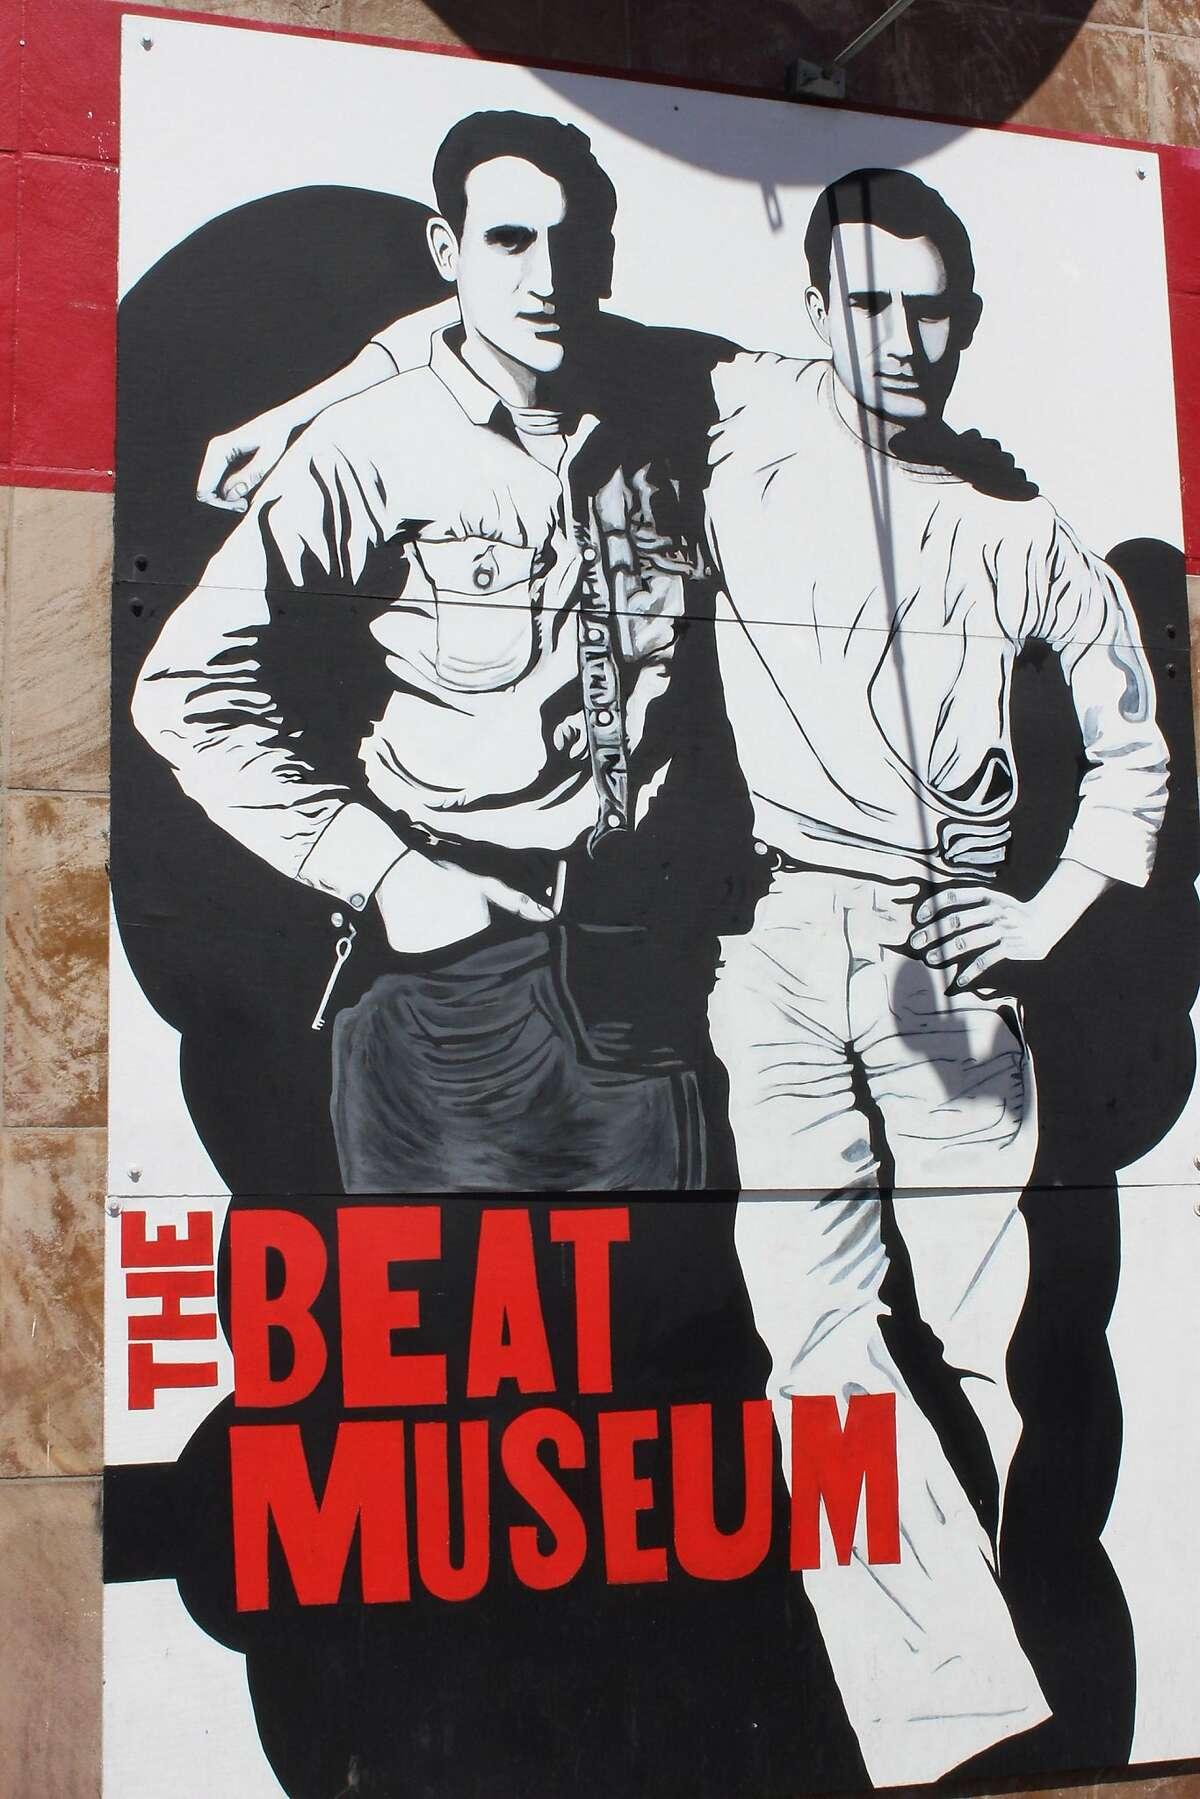 FILE - This Aug. 30, 2014 photo by Beat Museum founder and curator Jerry Cimino of a mural from a 1952 photograph adorning the exterior of the museum in San Francisco, shows Beat Generation writer Jack Kerouac, right, and his friend and fellow Beat author Neal Cassady. A letter written by Cassady inspired Kerouac's own writing. The letter, Kerouac said shortly before his death, would have transformed his counterculture muse Cassady into a towering literary figure, if only it hadn't been lost. As it turns out, the letter wasn't lost, just misplaced, and it's scheduled to go on sale Dec. 17, 2014. (AP Photo/The Beat Museum, Jerry Cimino, File)